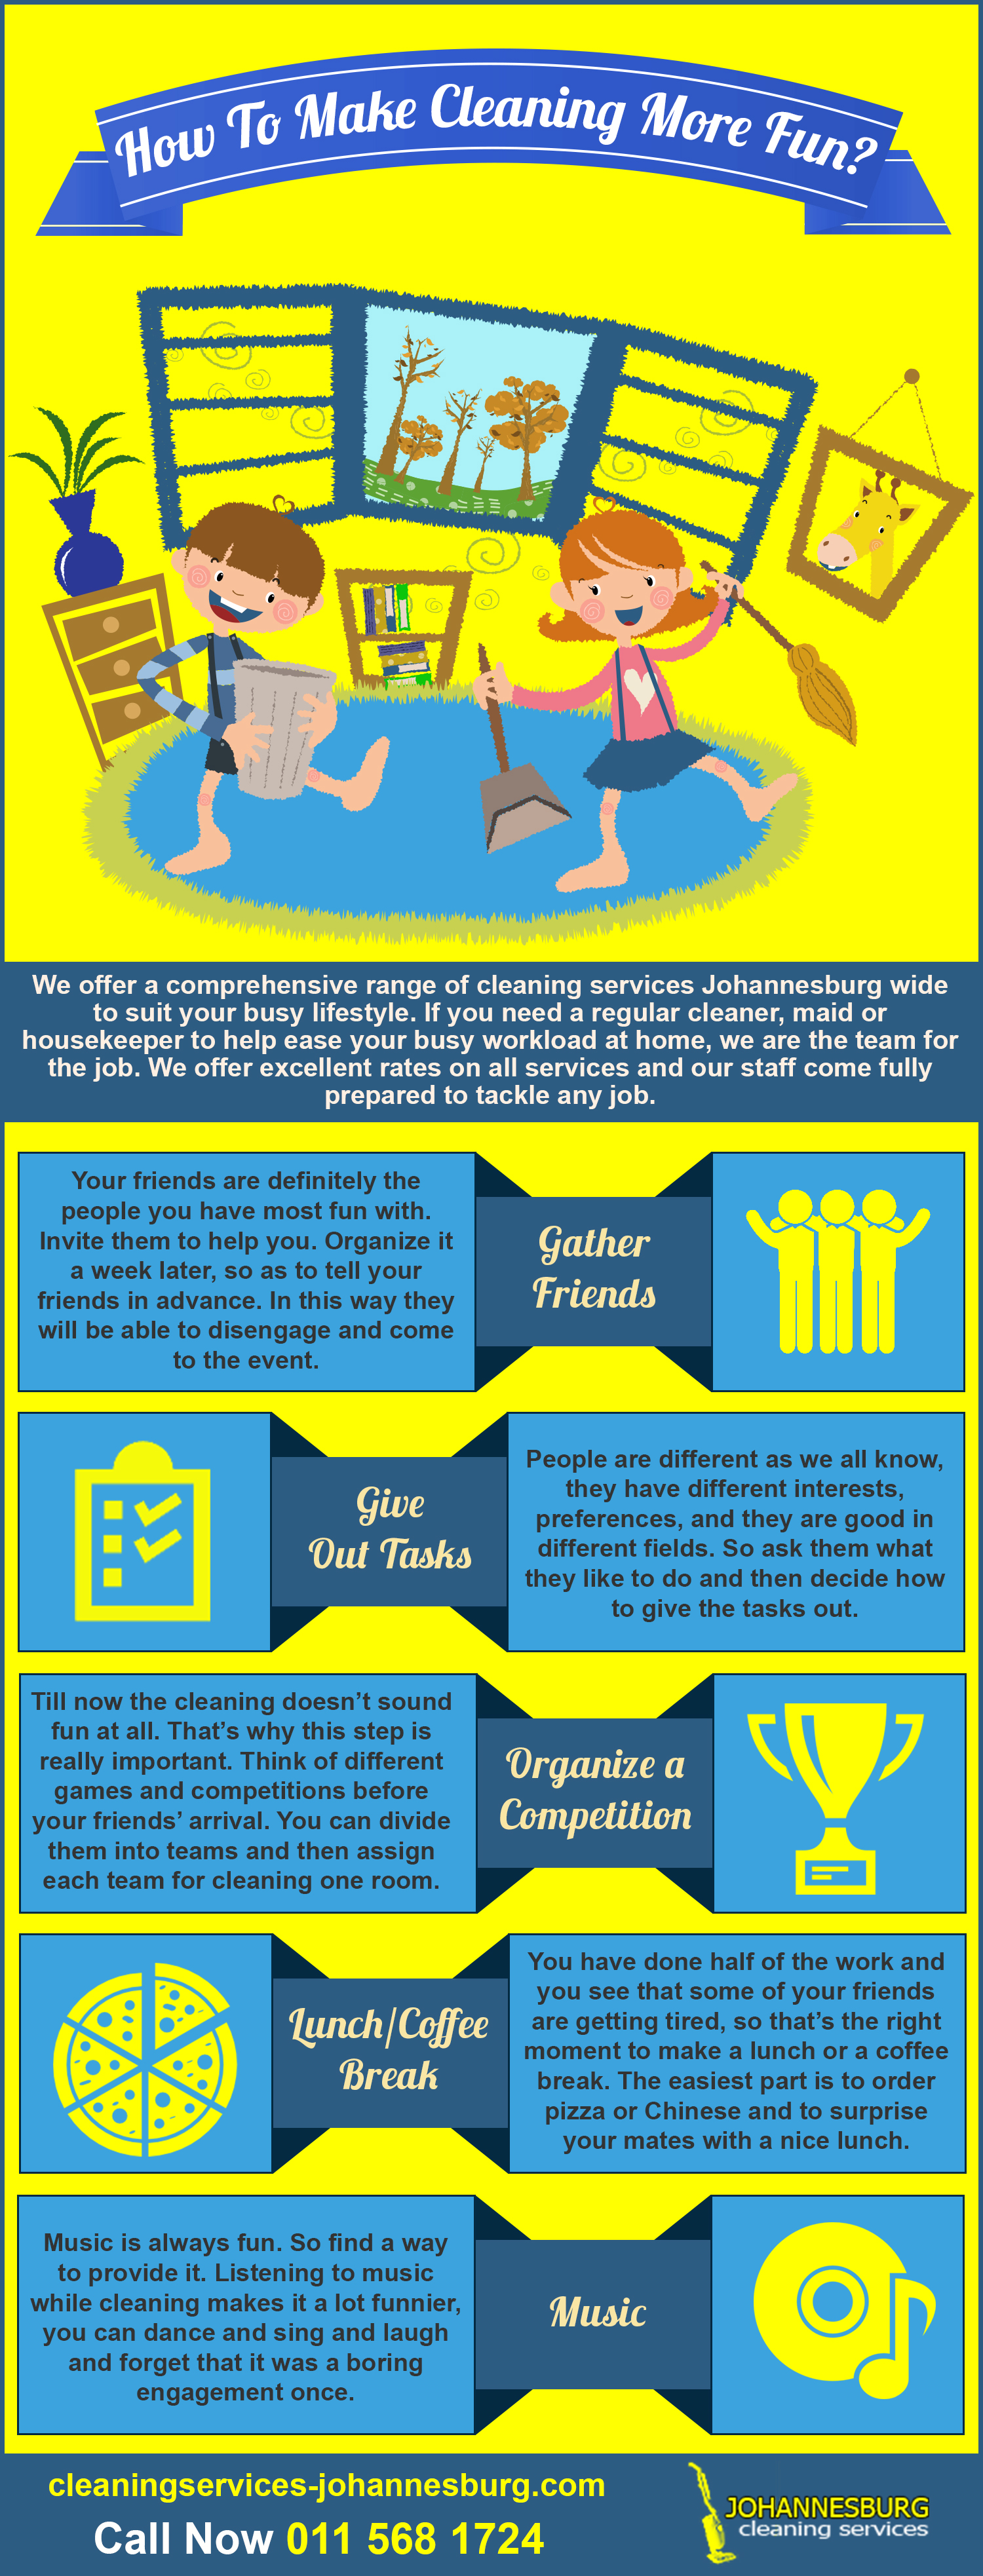 infographic-cleaningservices-johannesburg-com